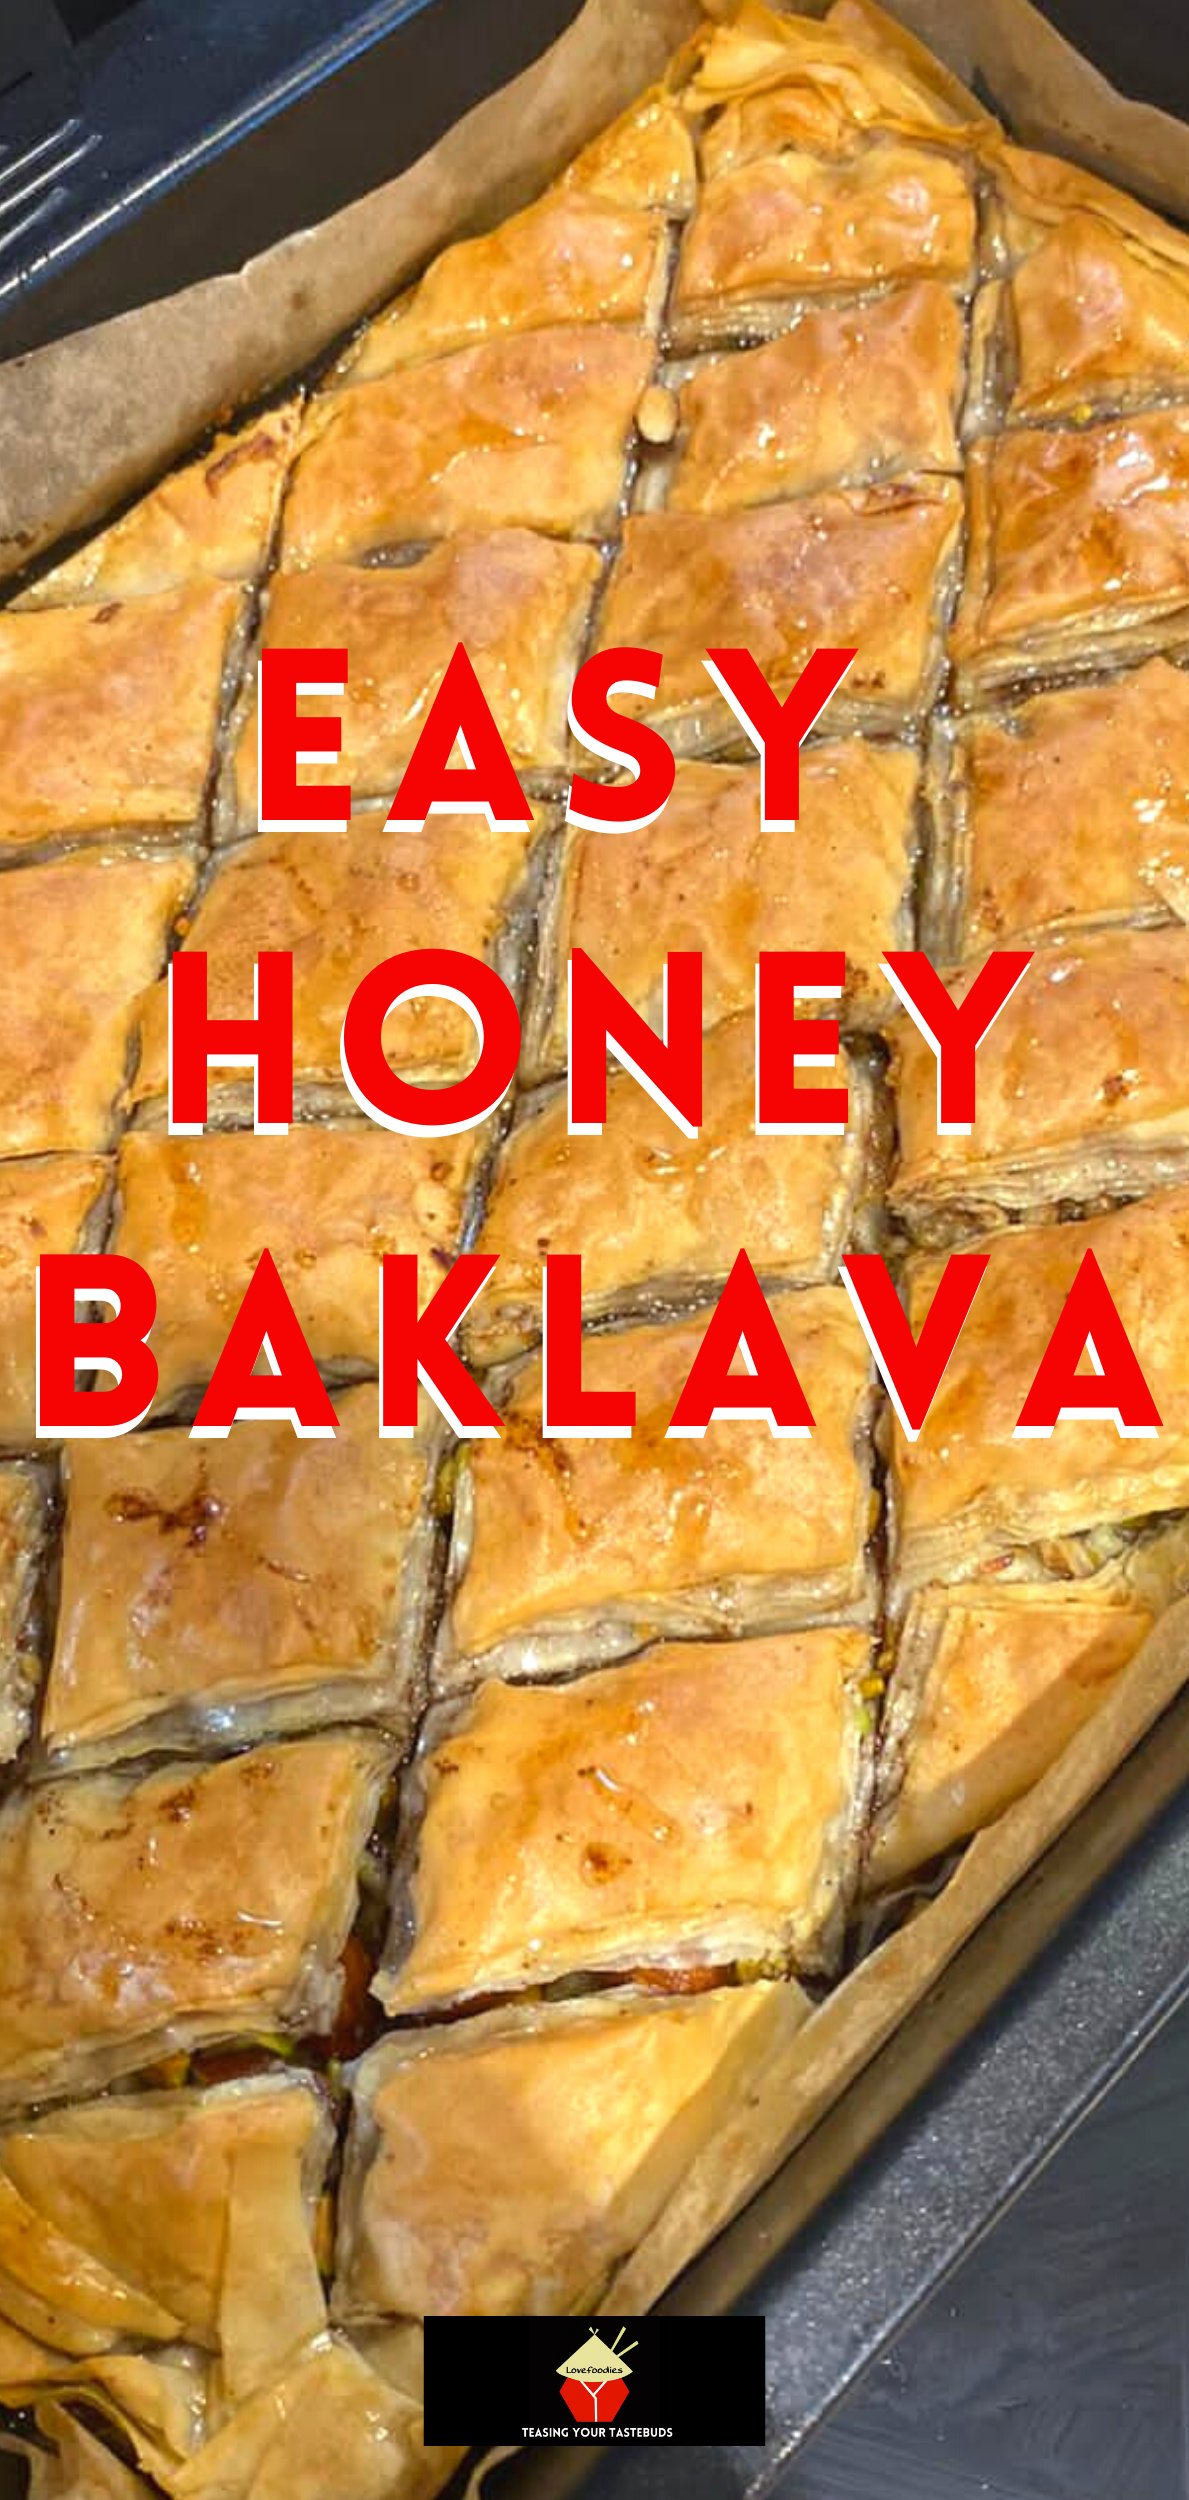 Easy Honey Baklava. Baklava is a Middle Eastern classic sweet treat, filled with a variety of nuts, honey, citrus, and spices, between layers of crunchy phyllo pastry. Ideal for serving at parties, or to have as a snack. An easy and simple recipe for the best baklava!